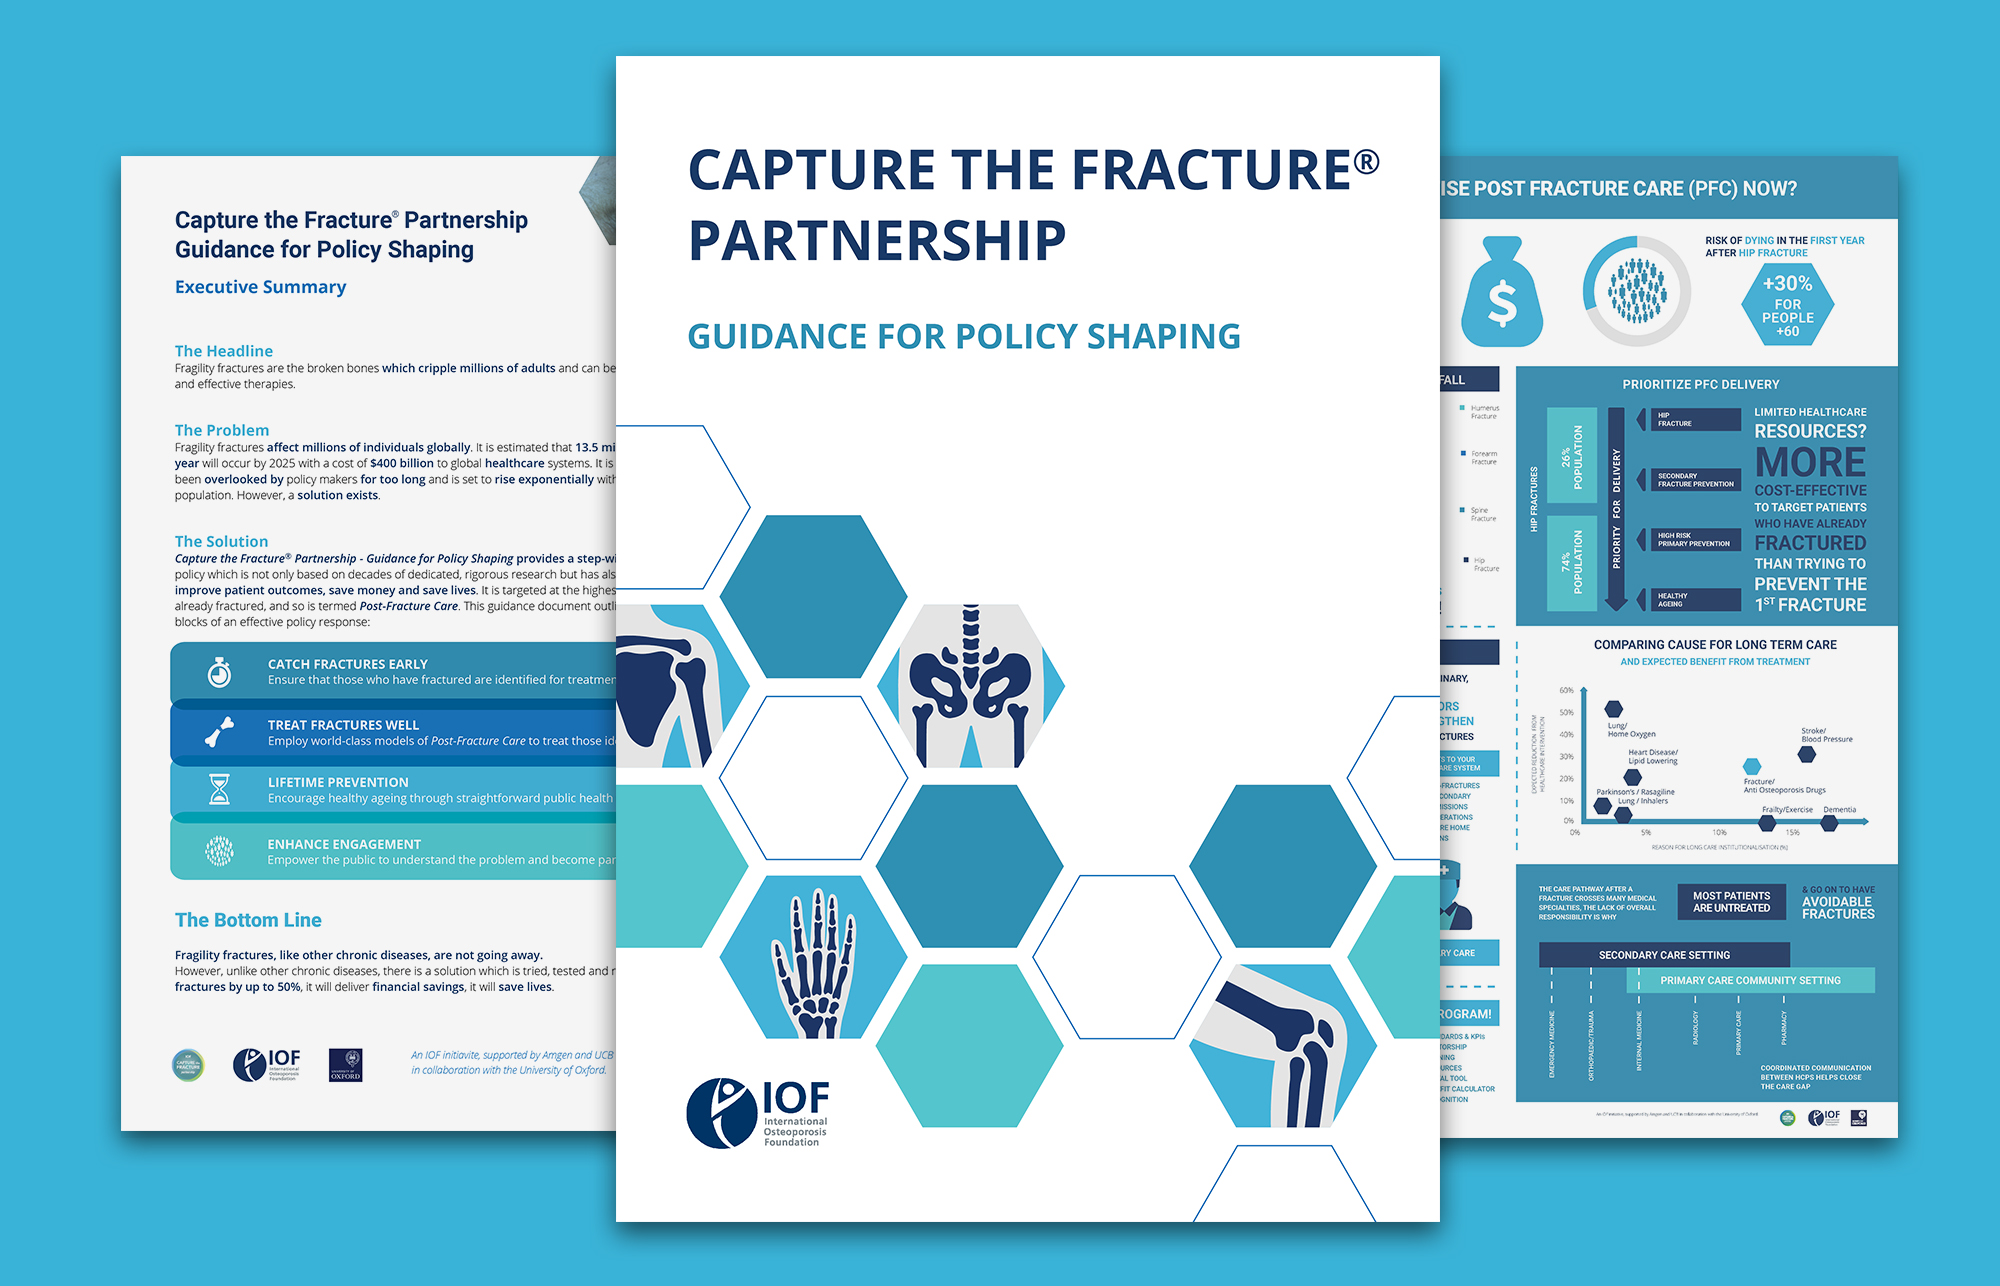 IOF's new policy guidance highlights urgent global need for post-fracture care programs